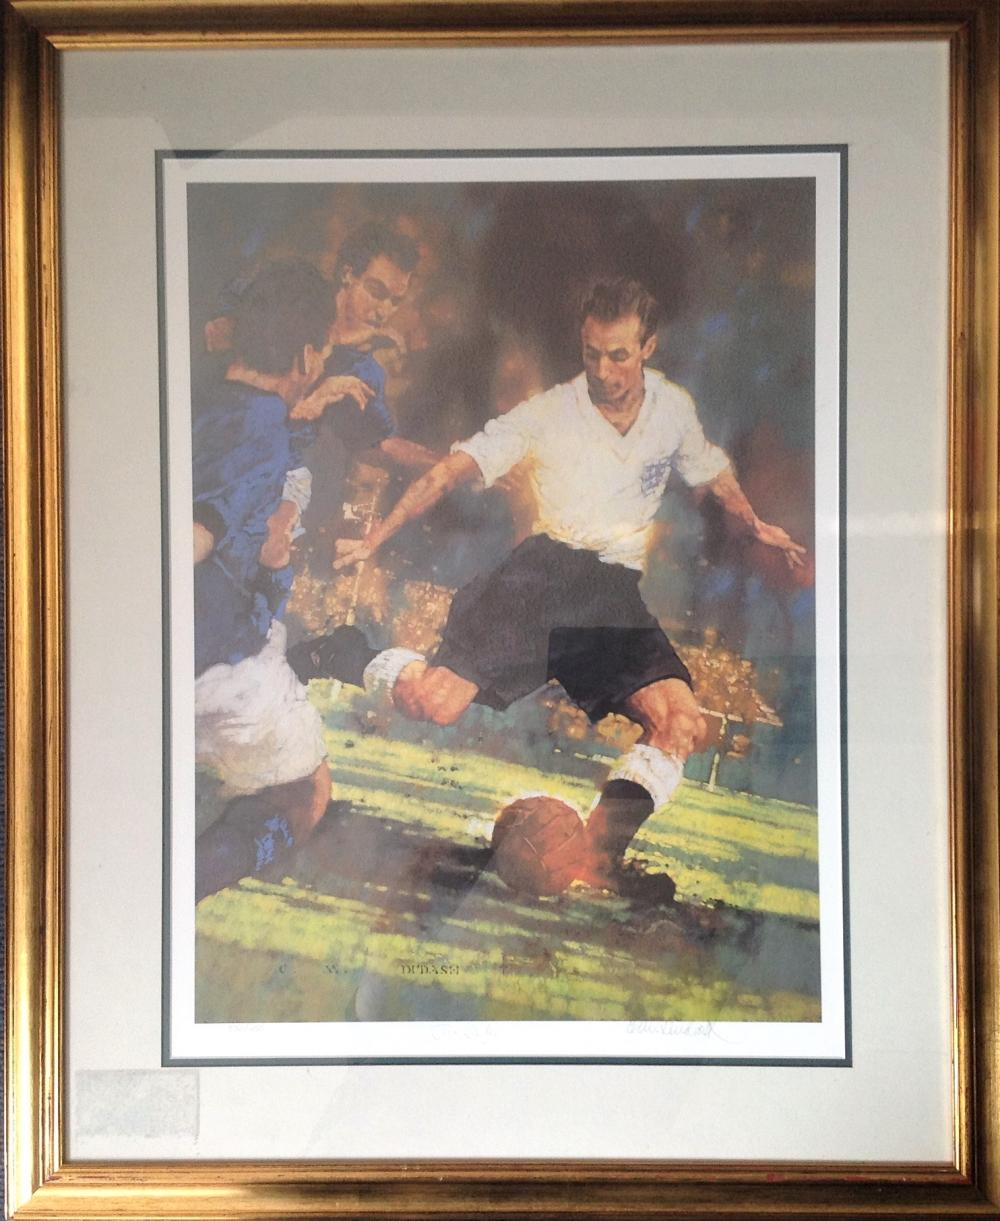 Football Sir Stanley Mathews 35x28 framed and mounted print limited edition 570/650 signed in pencil